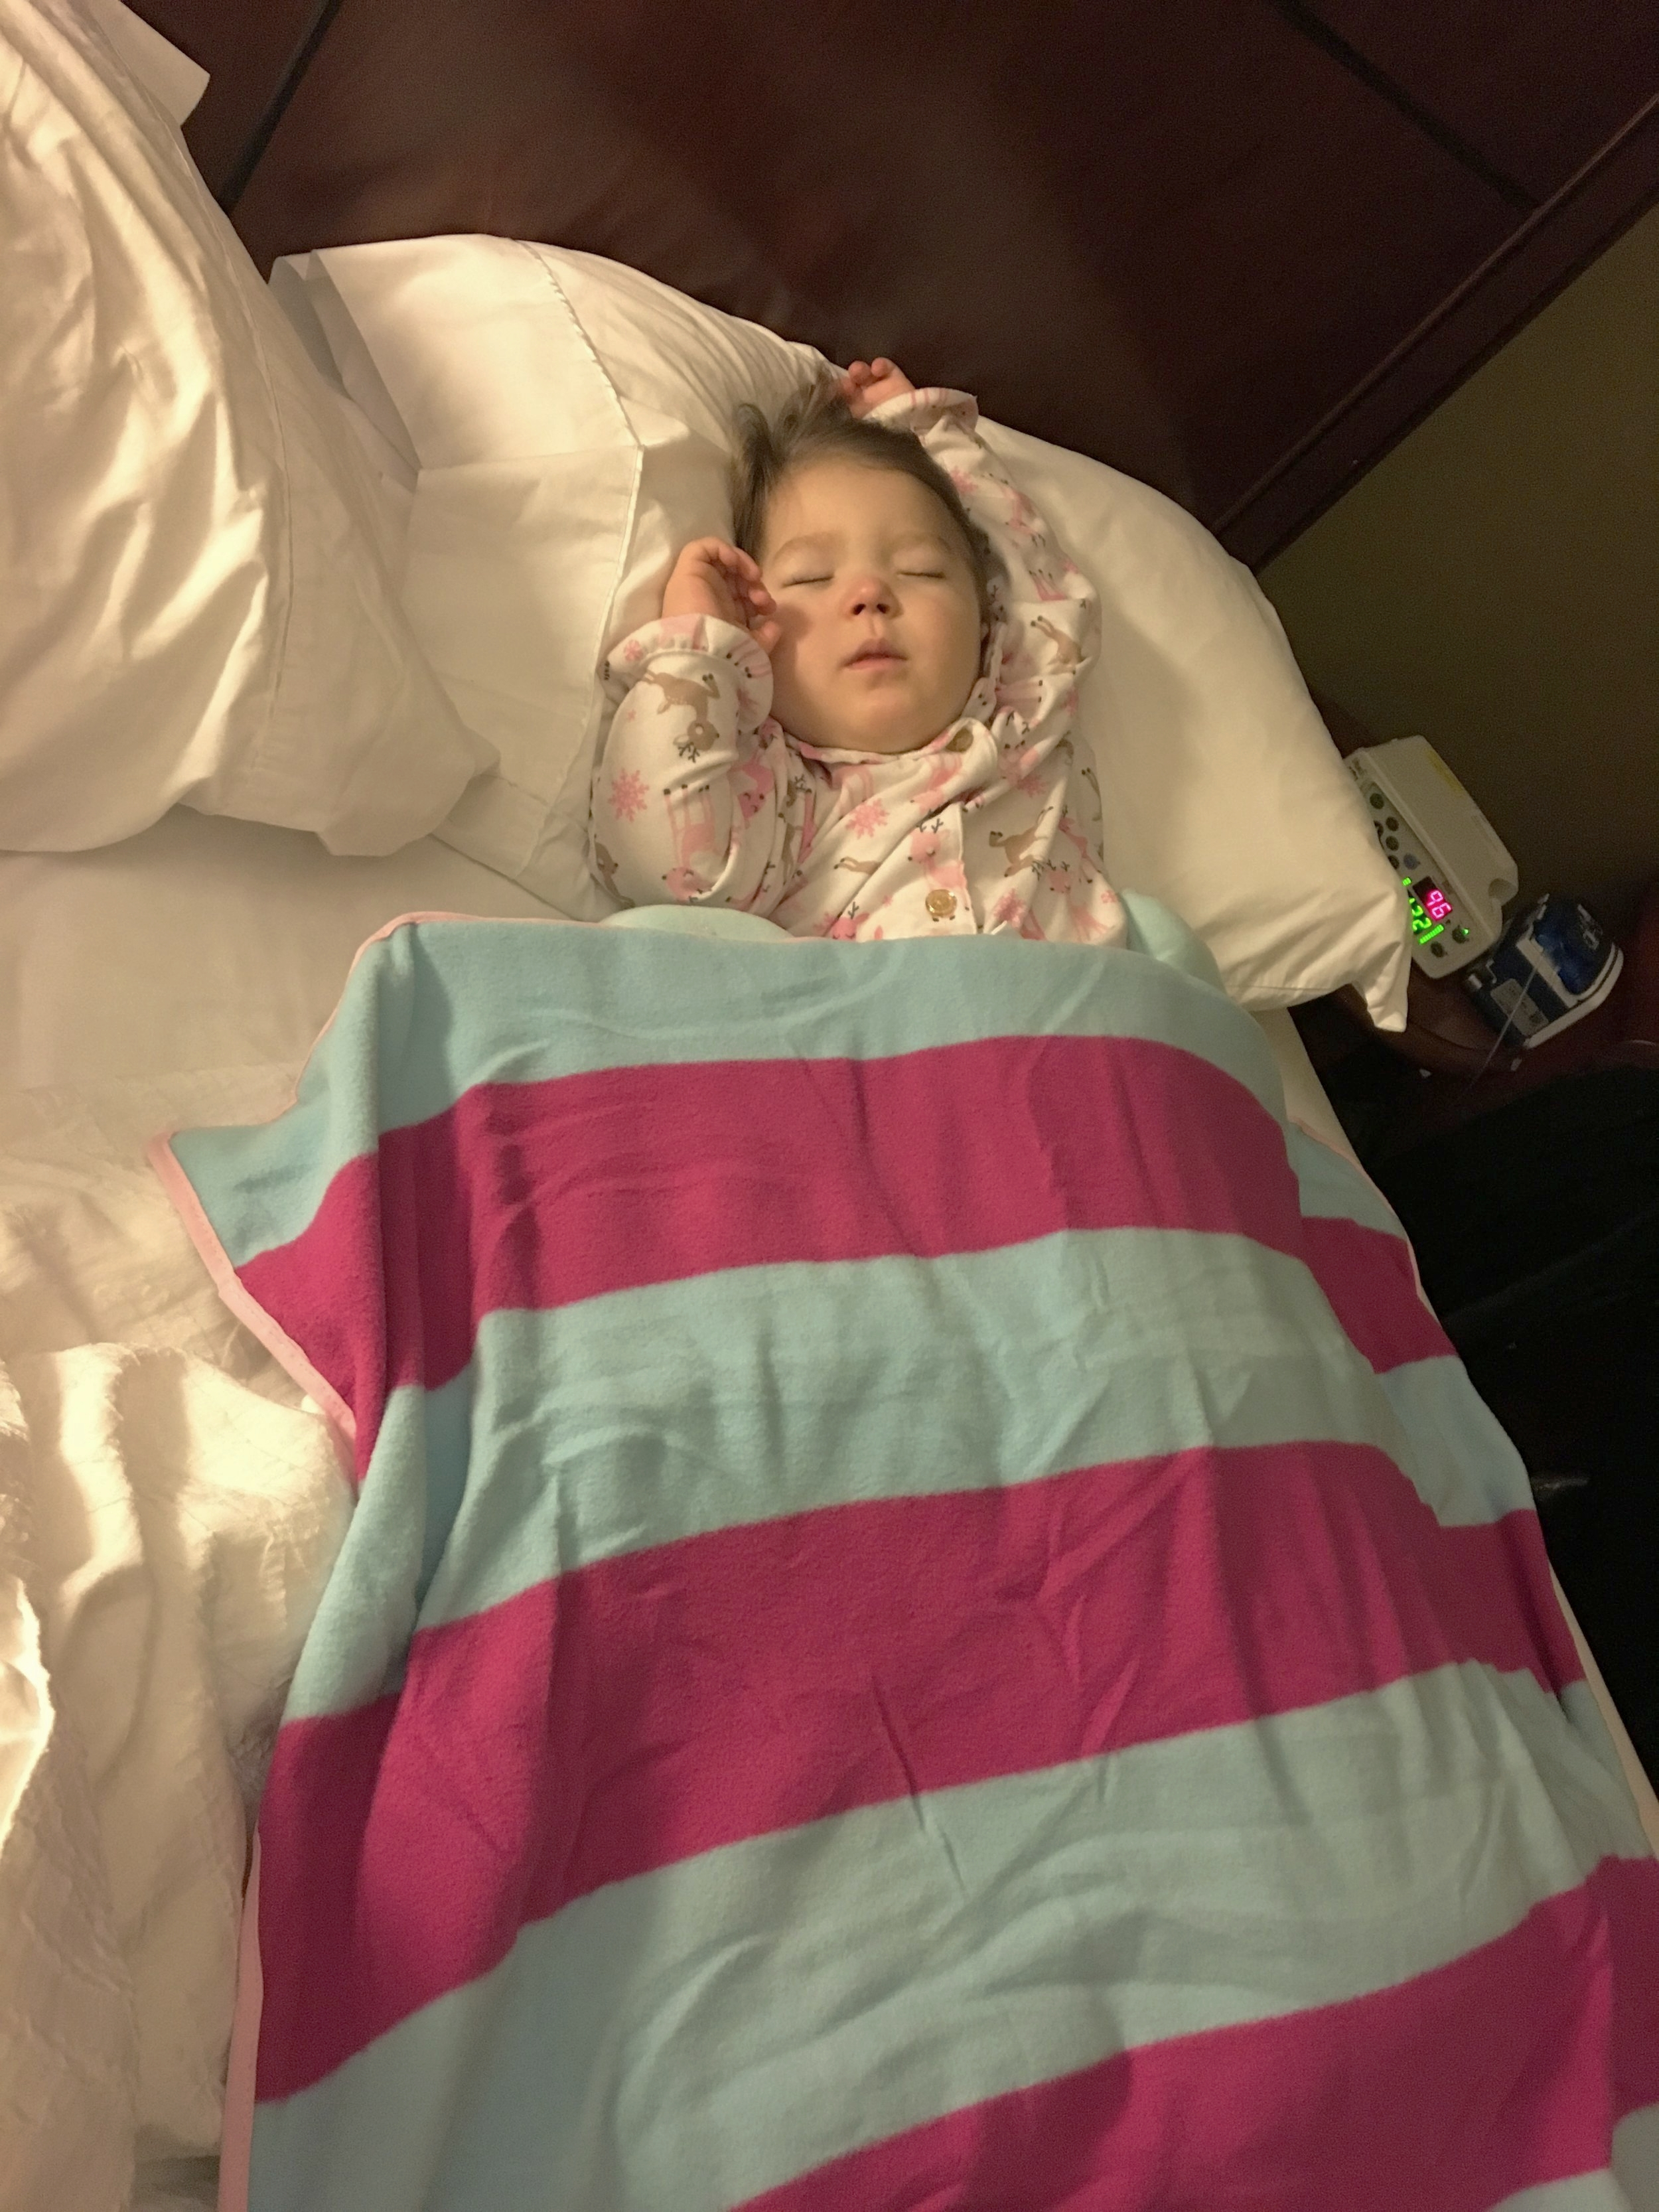 Sleeping after a long day of testing at Duke Univeristy as part of the NIH's Undiagnosed Diseases Program. January, 2018